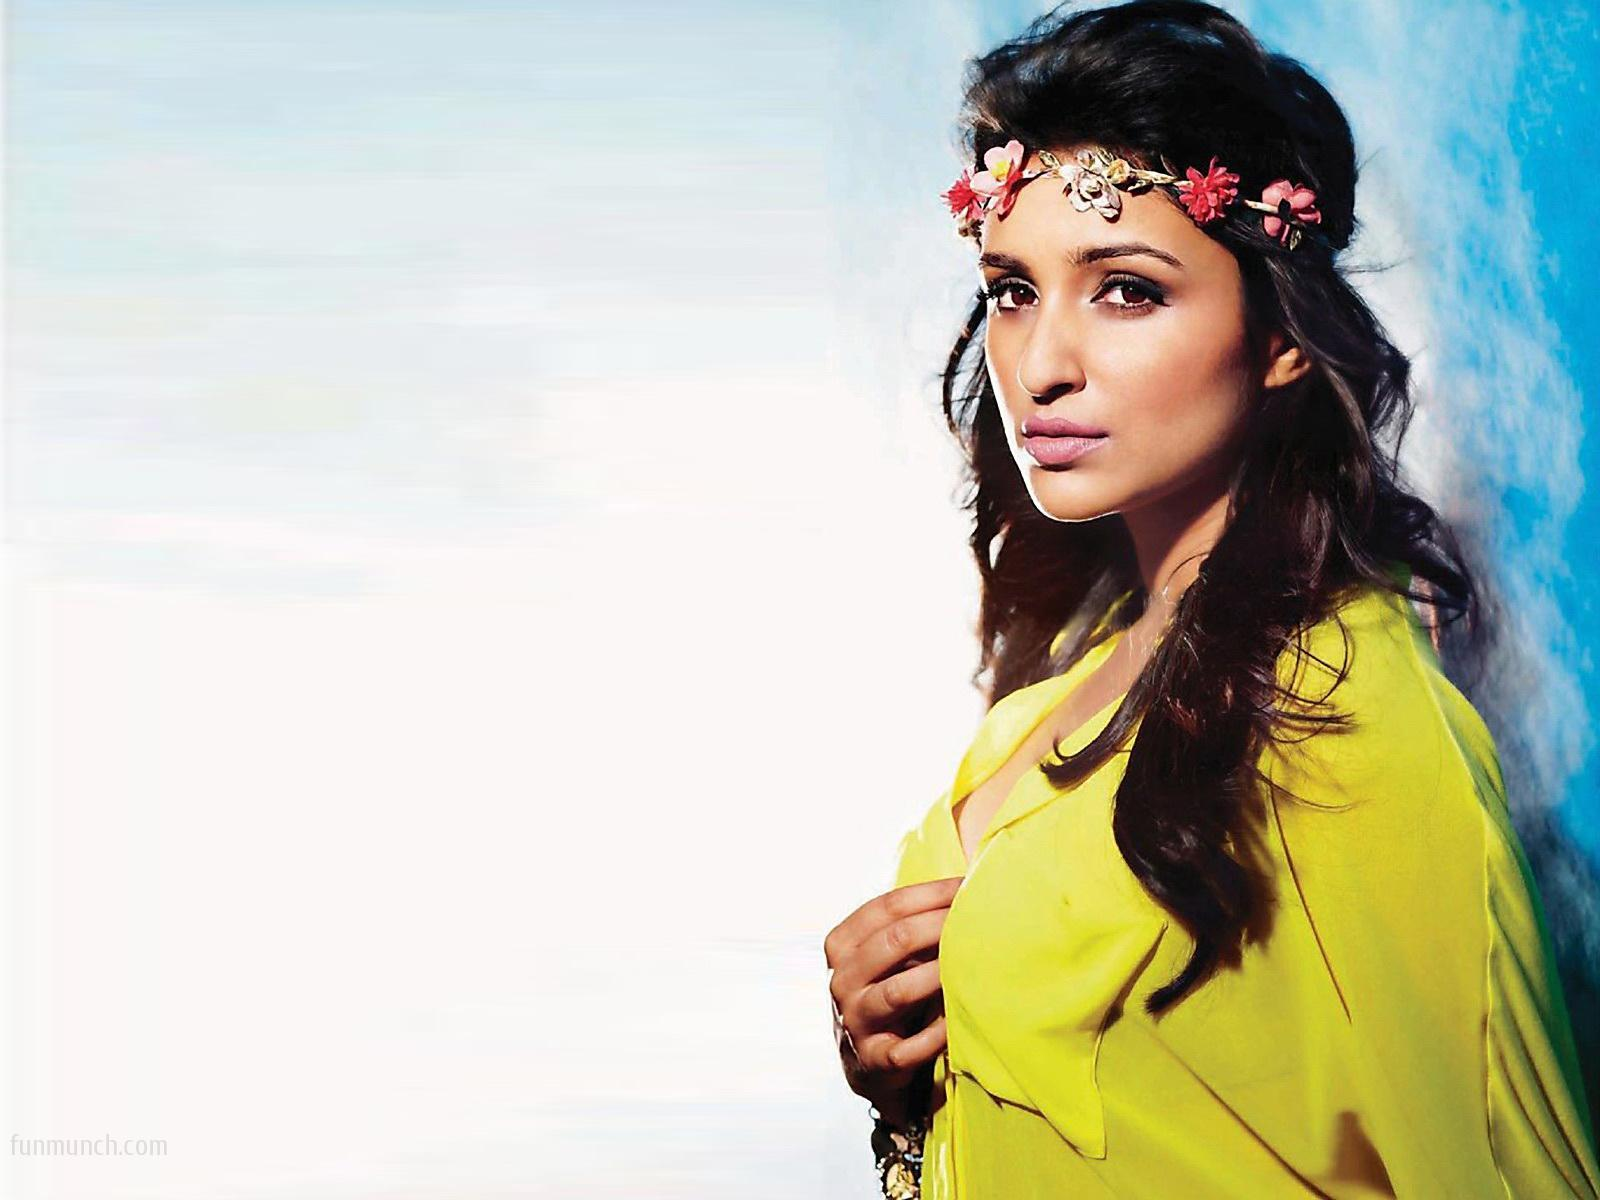 http://3.bp.blogspot.com/-pkNWZ8uXVso/UXp5B_3nUyI/AAAAAAAAGcs/PwFZmBbdVgw/s1600/parineeti+chopra+hd+wallpapers+++latest+new+collection+(2).jpeg